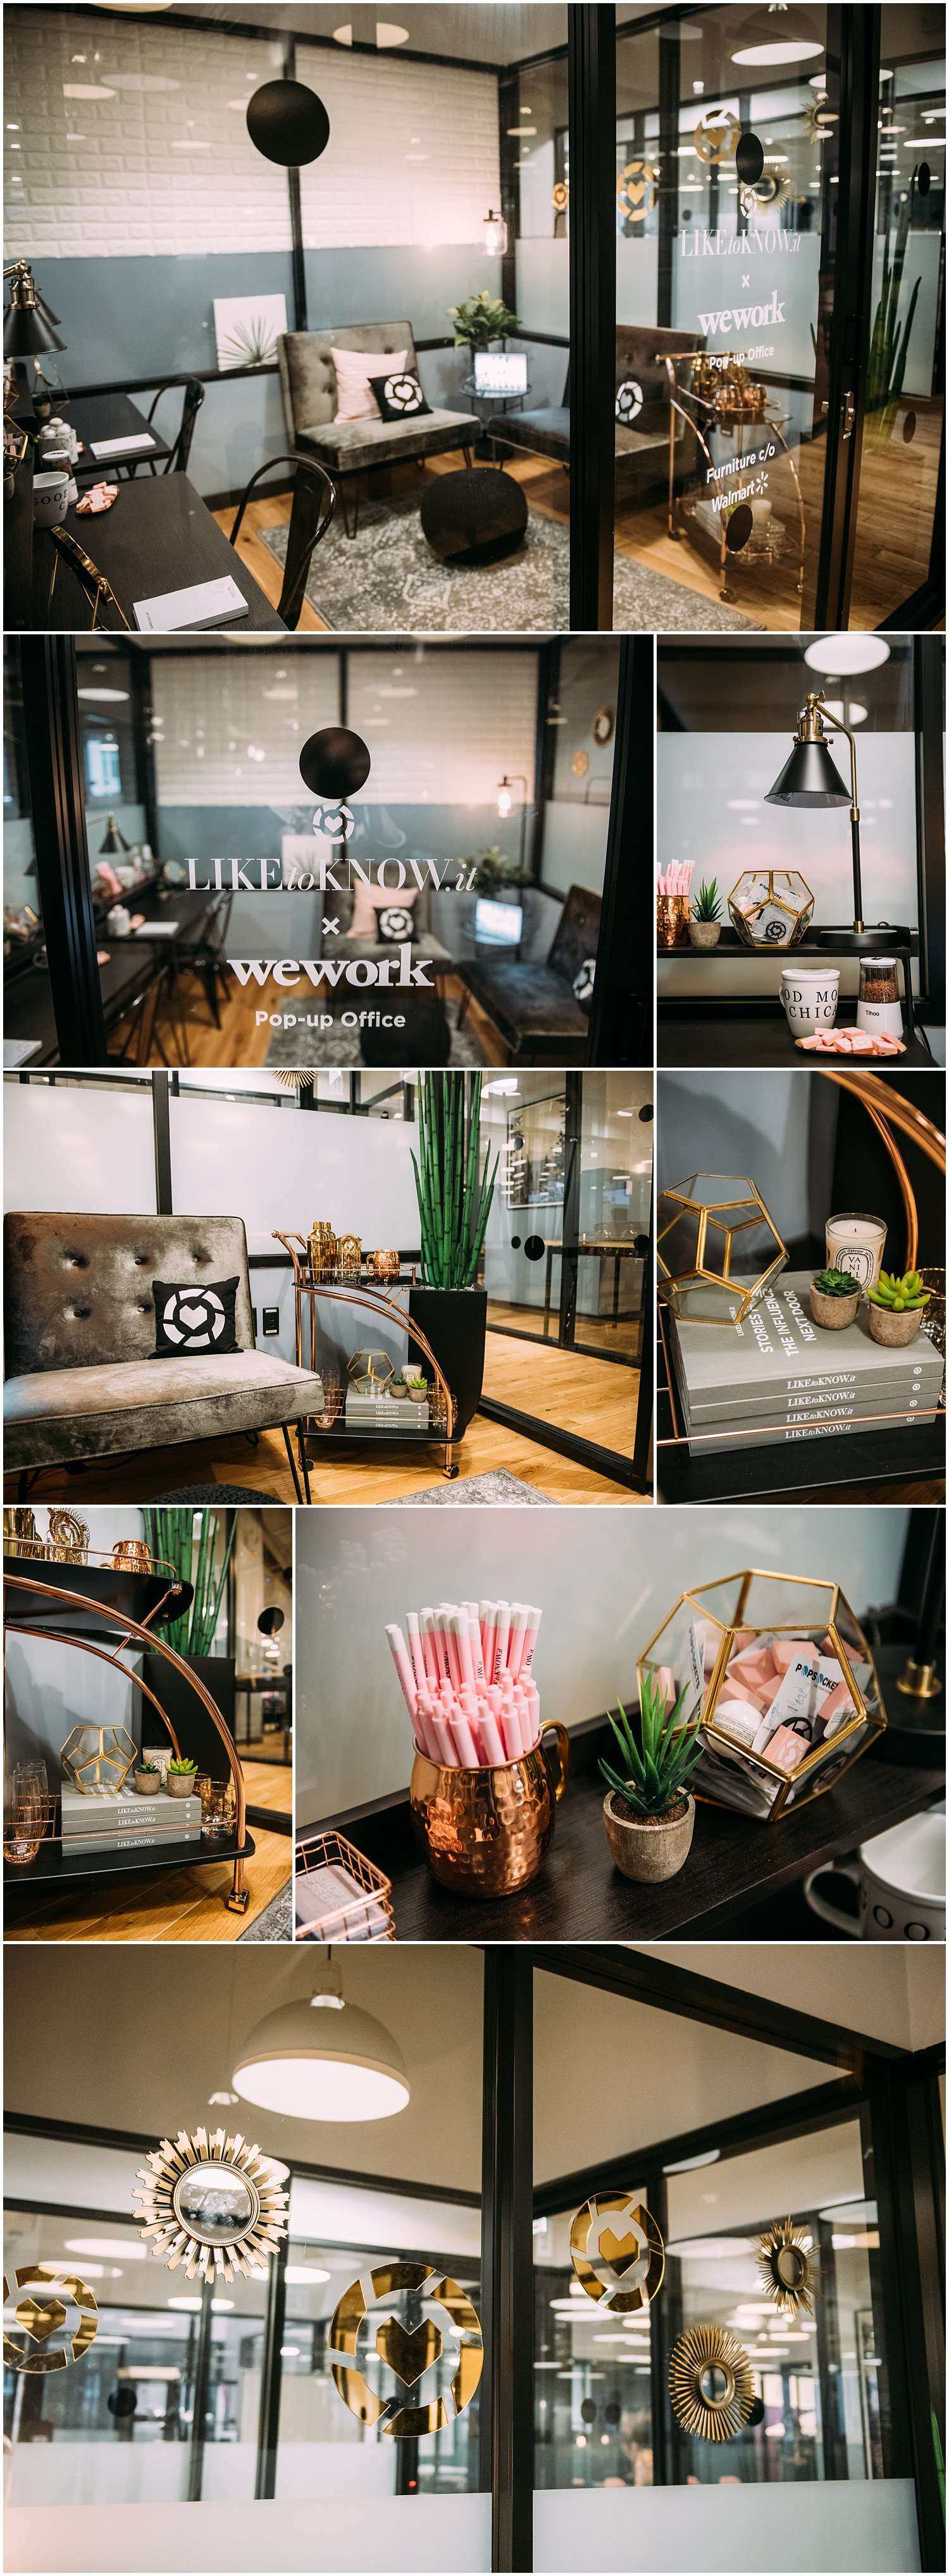 Rewardstyle, Liketoknow.it, Book Tour, WeWork, State St, Chicago, Photos, photography, event, stories from an influencer next door, coffee table book, danielle moss, the everygirl, liz adams, jenn lake, lifestyle, blogger, influencer, illinois